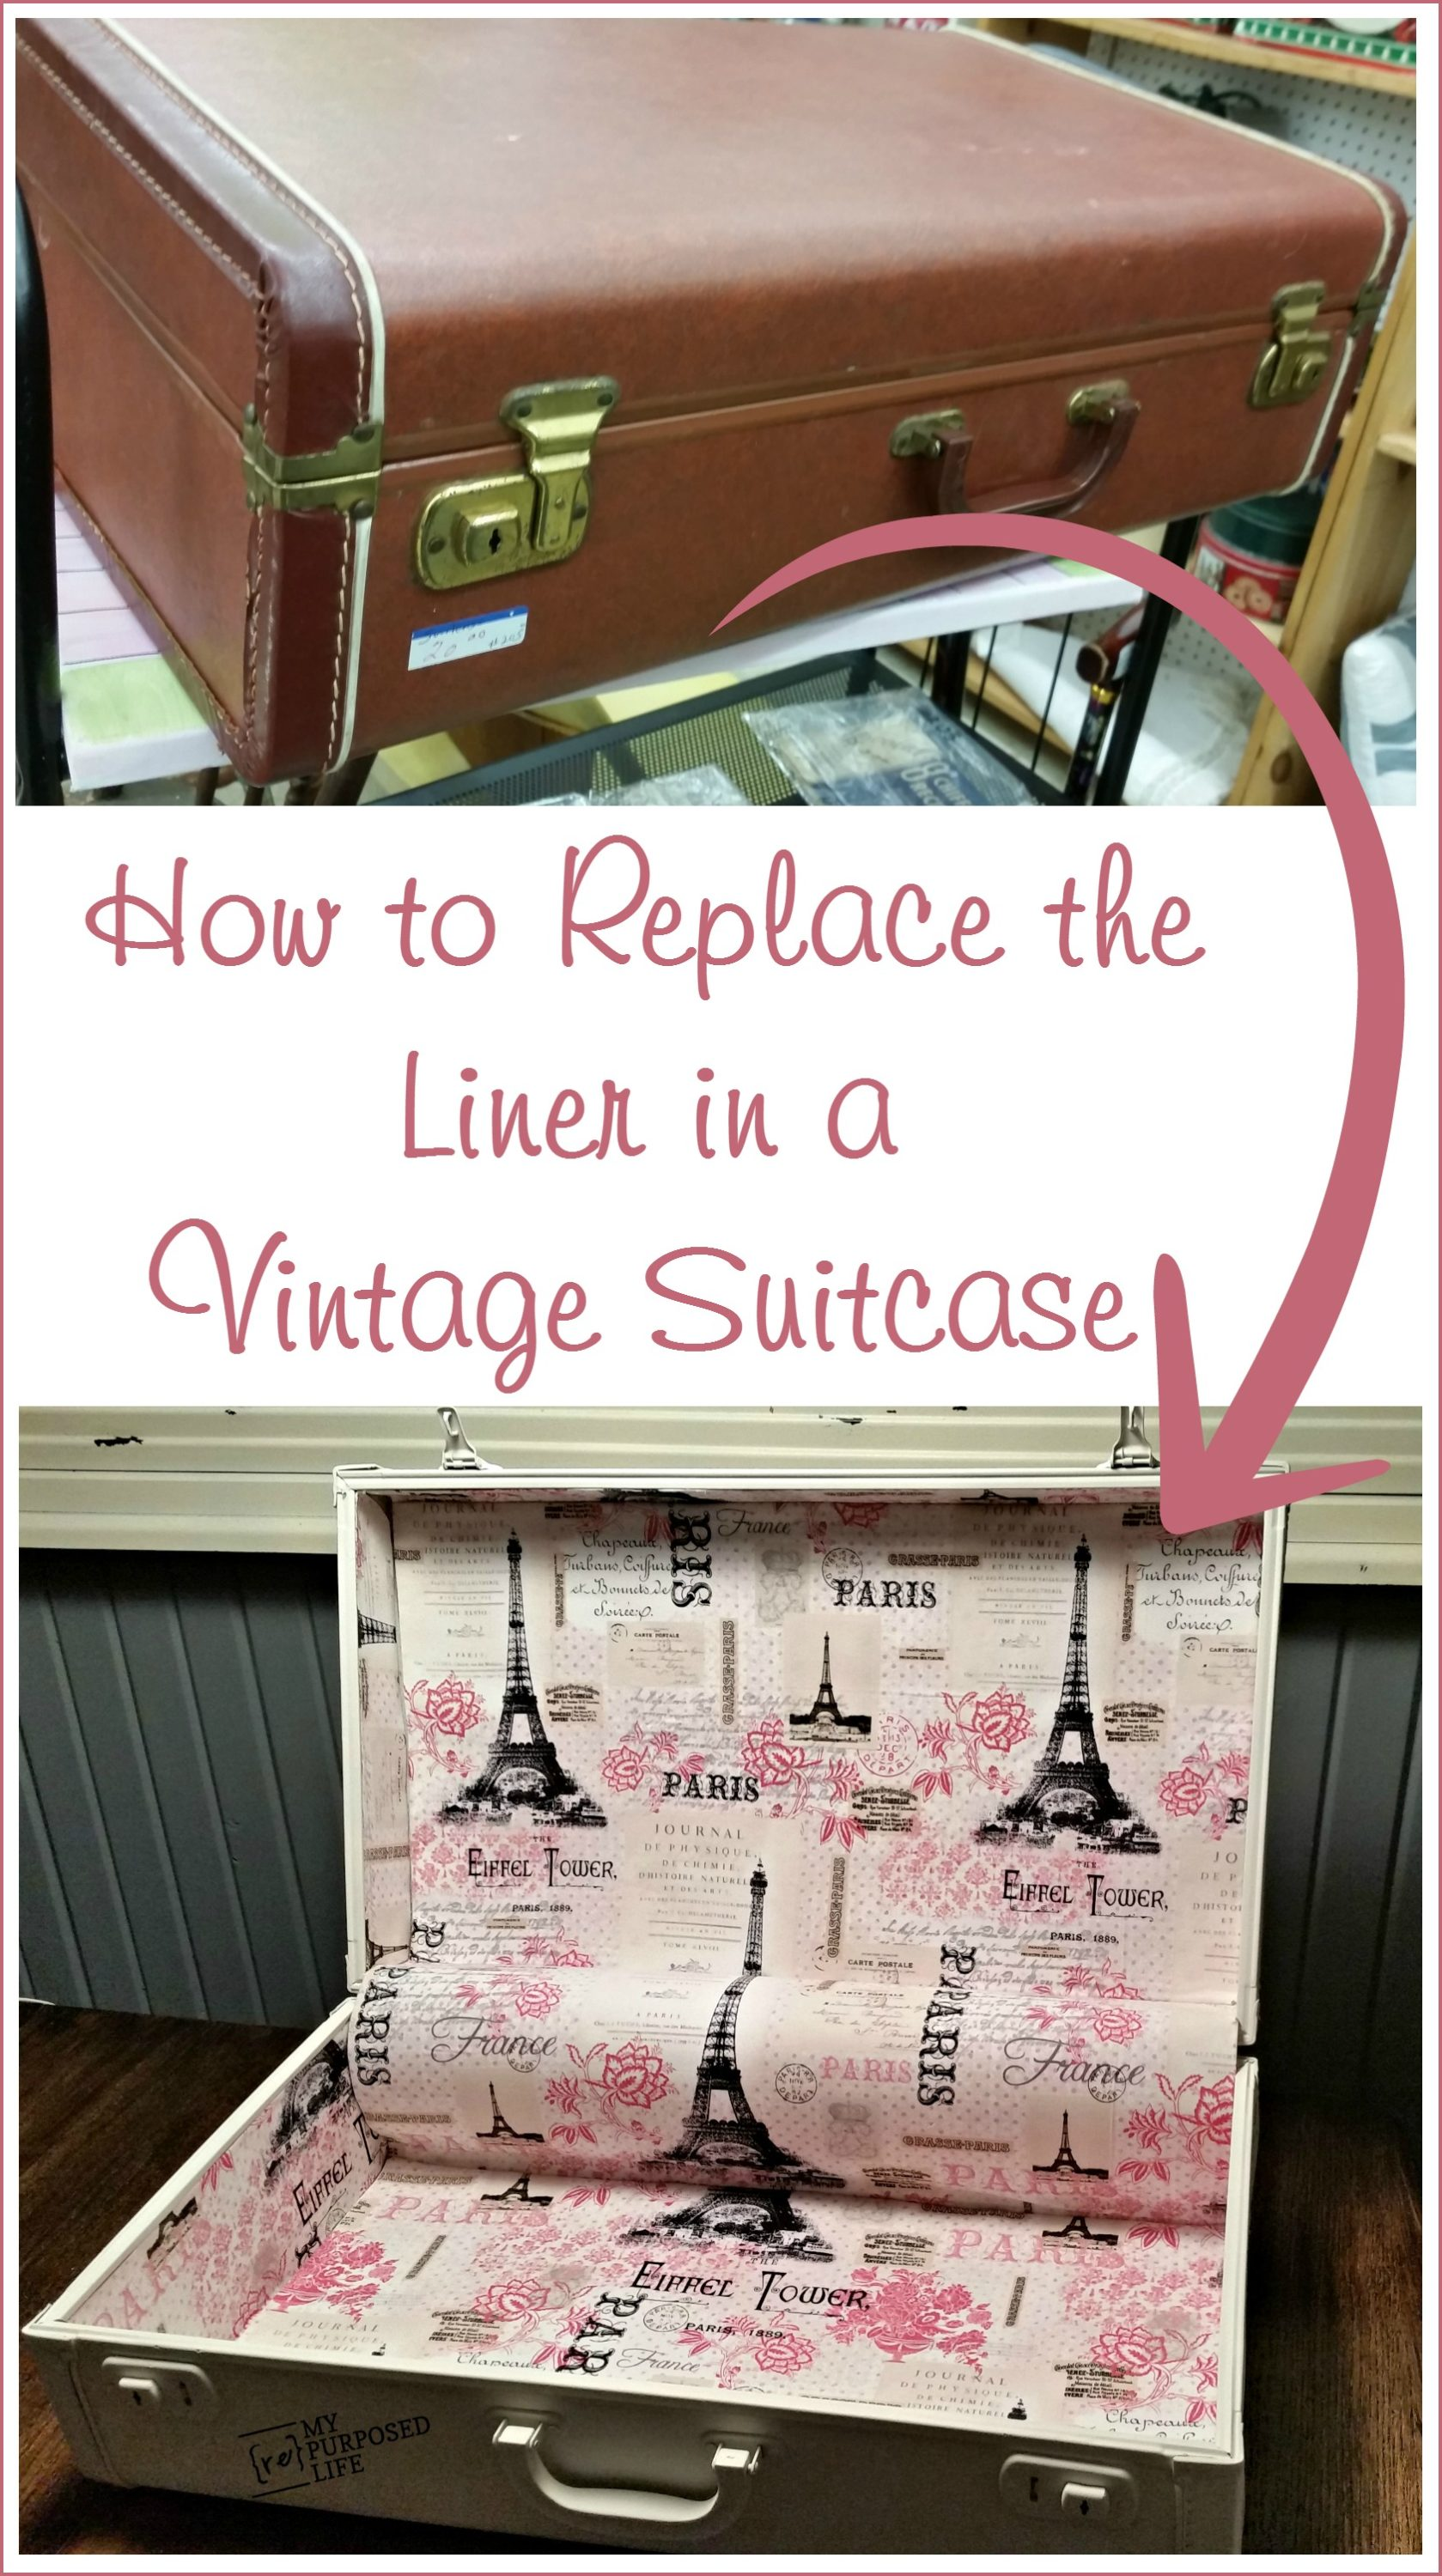 How to Line a Suitcase | Vintage Suitcase Makeover - My Repurposed ...